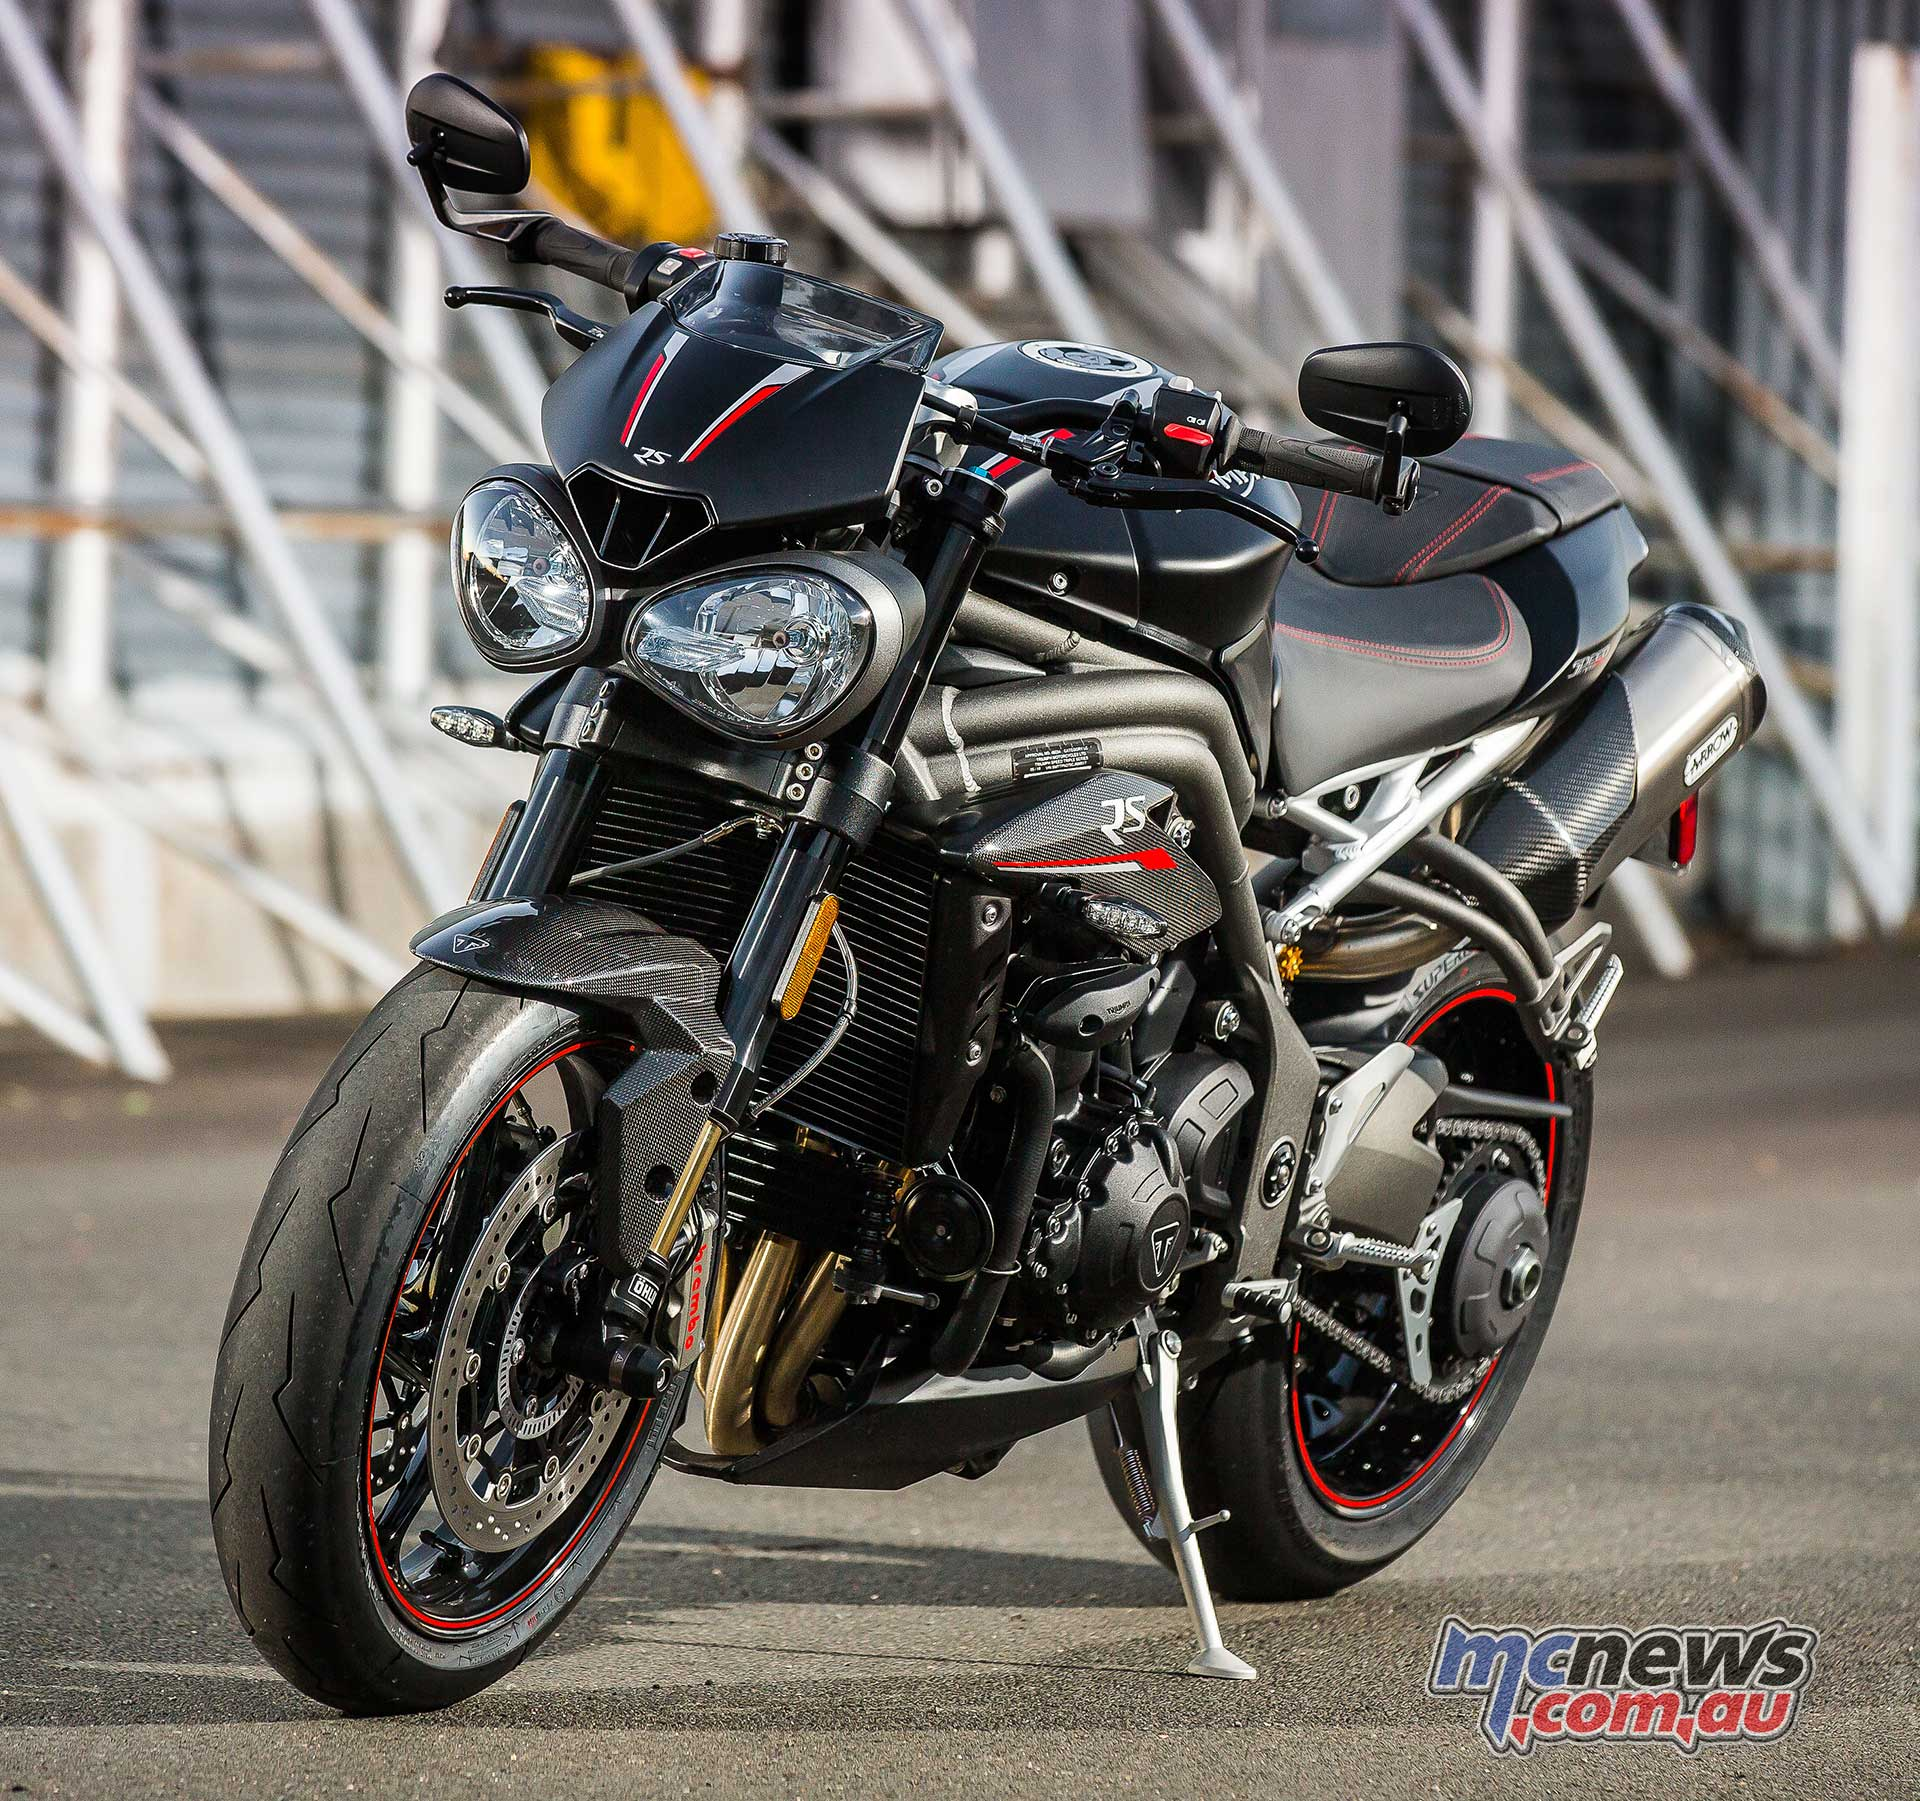 Astonishing Triumph Speed Triple Rs Review Motorcycle Tests Mcnews Ibusinesslaw Wood Chair Design Ideas Ibusinesslaworg